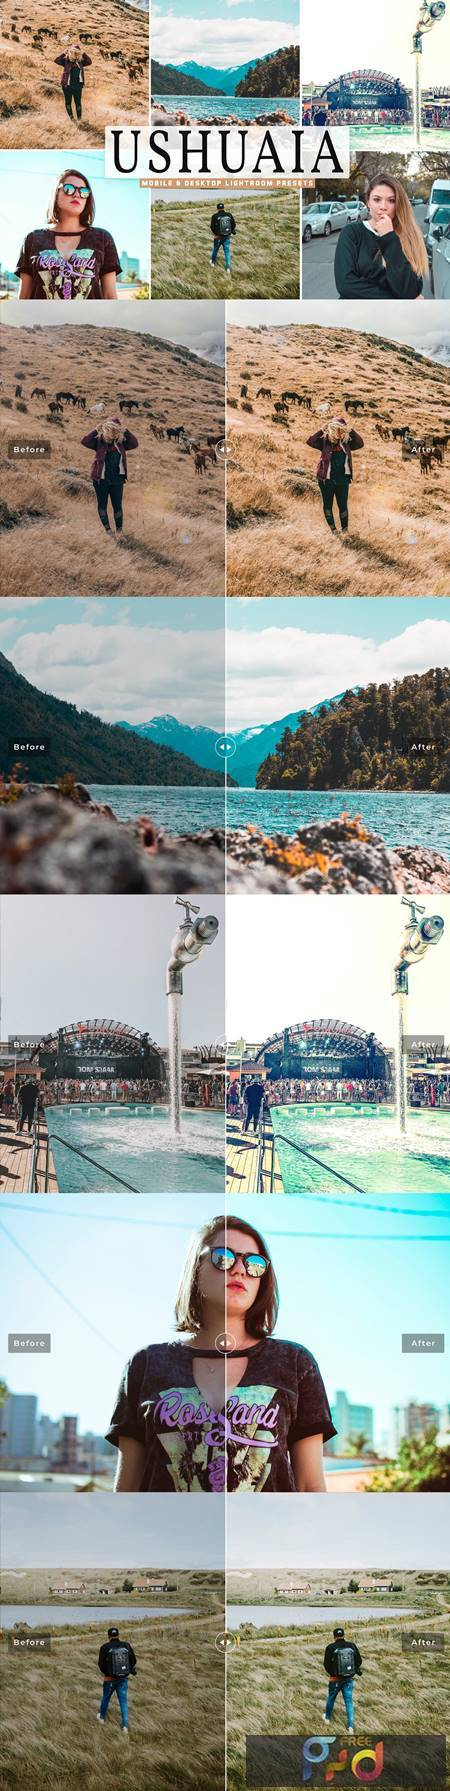 Ushuaia Mobile & Desktop Lightroom Presets 5300031 1